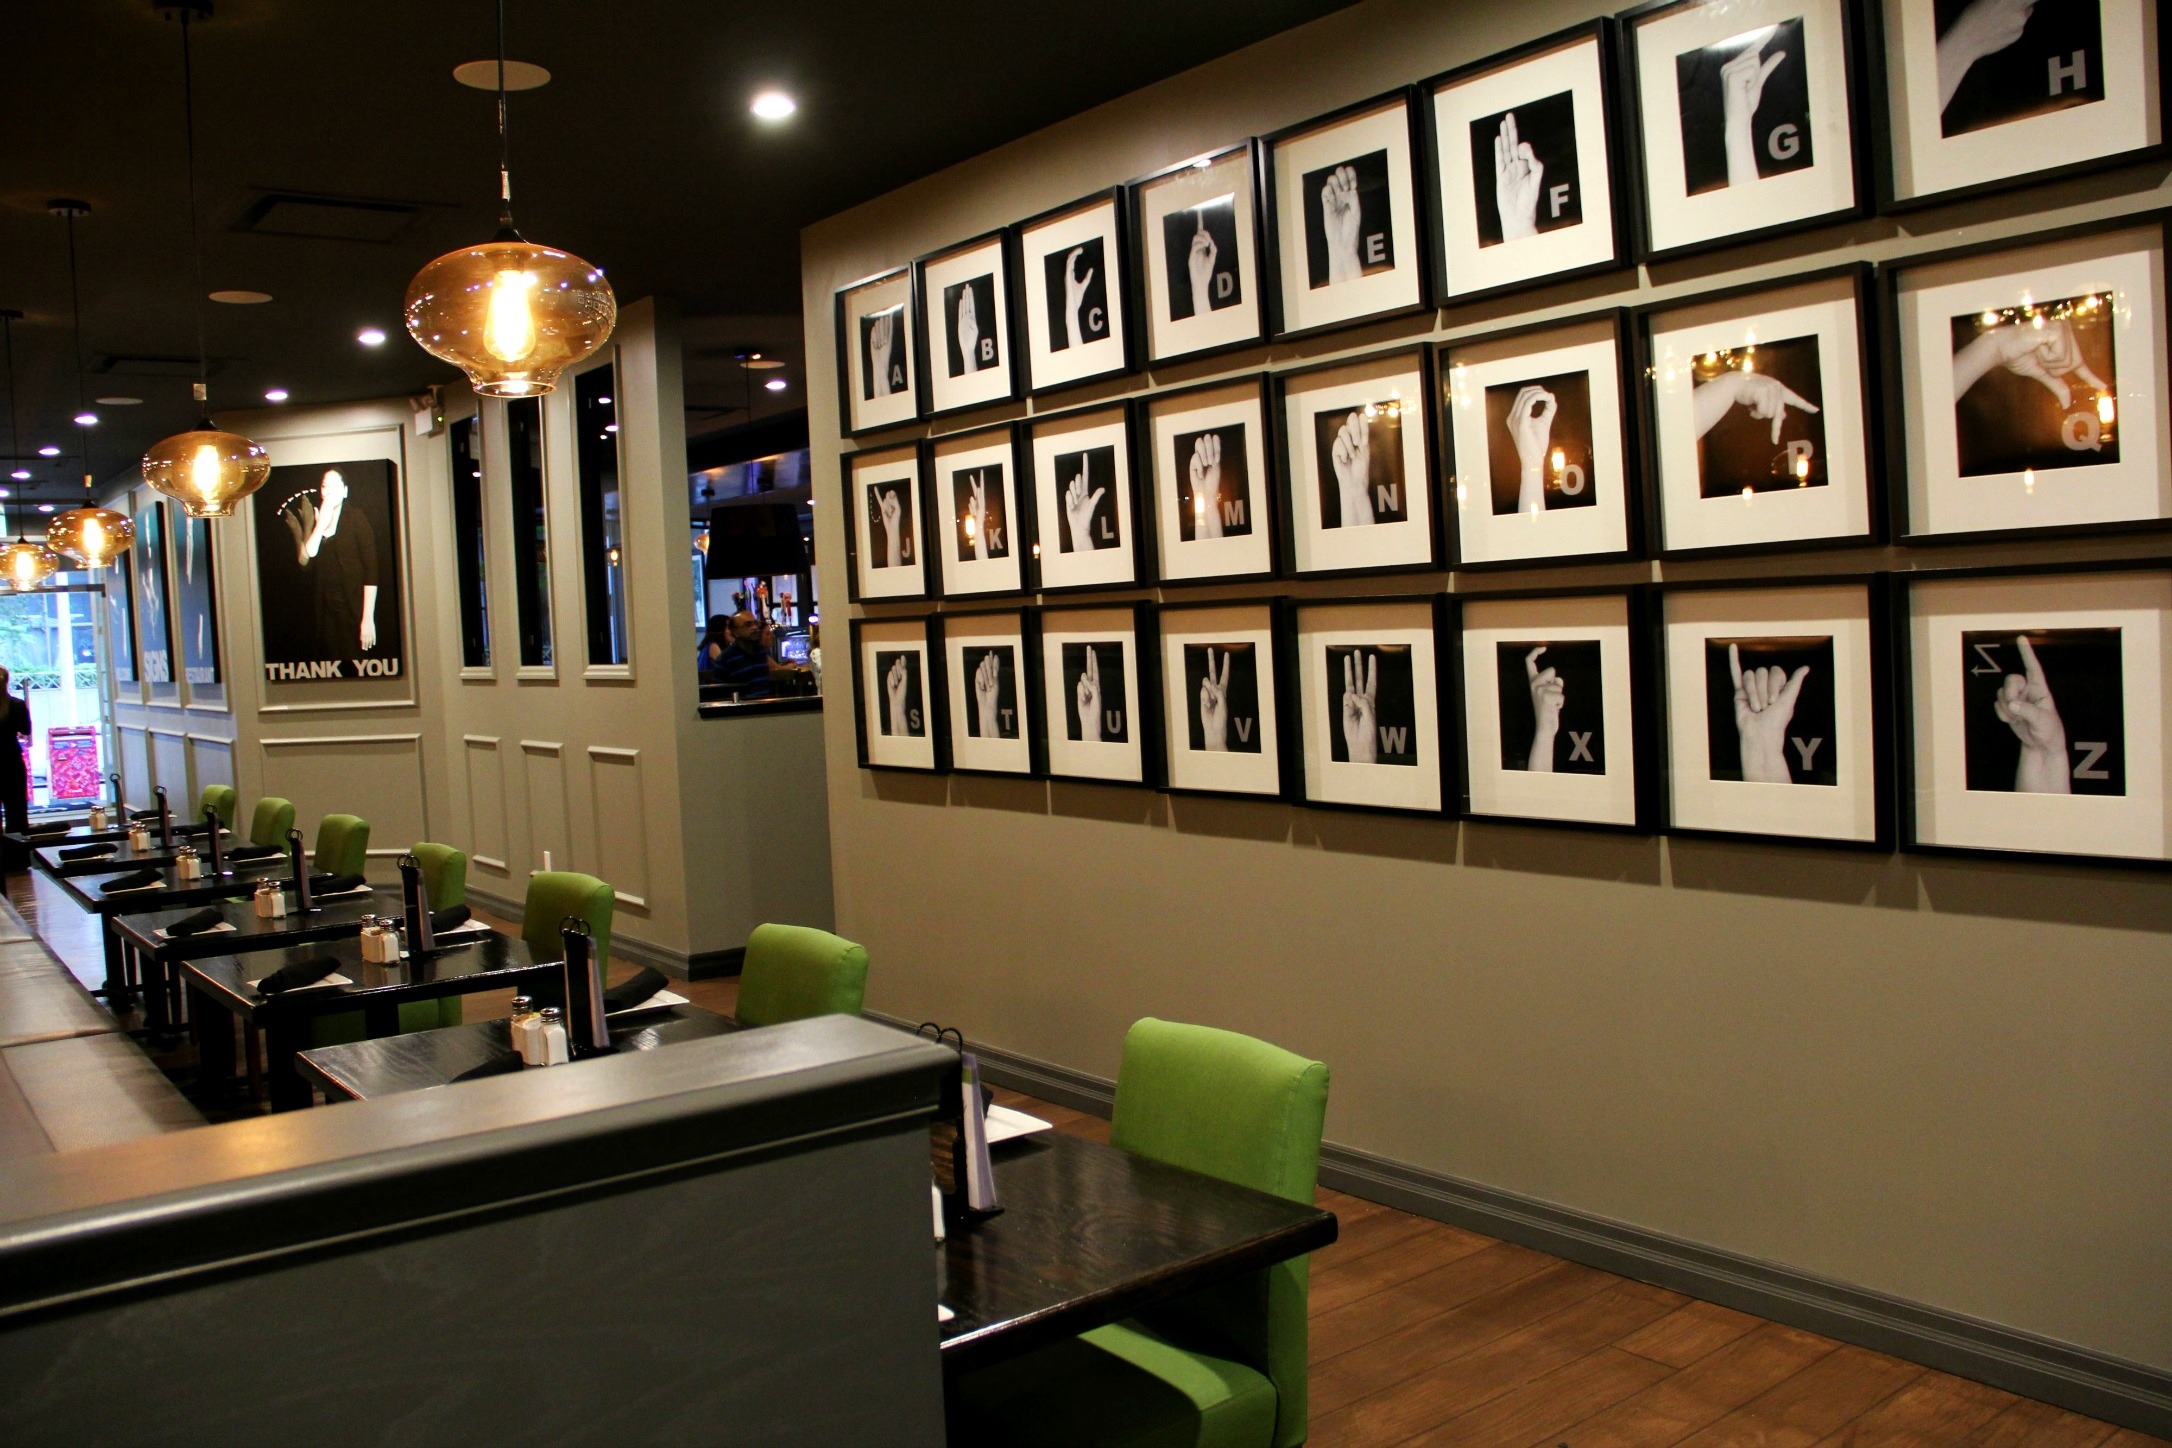 The interior of SIGNS Restaurant & Bar, 558 Yonge St., in Toronto displaying photos of Signing on their walls.